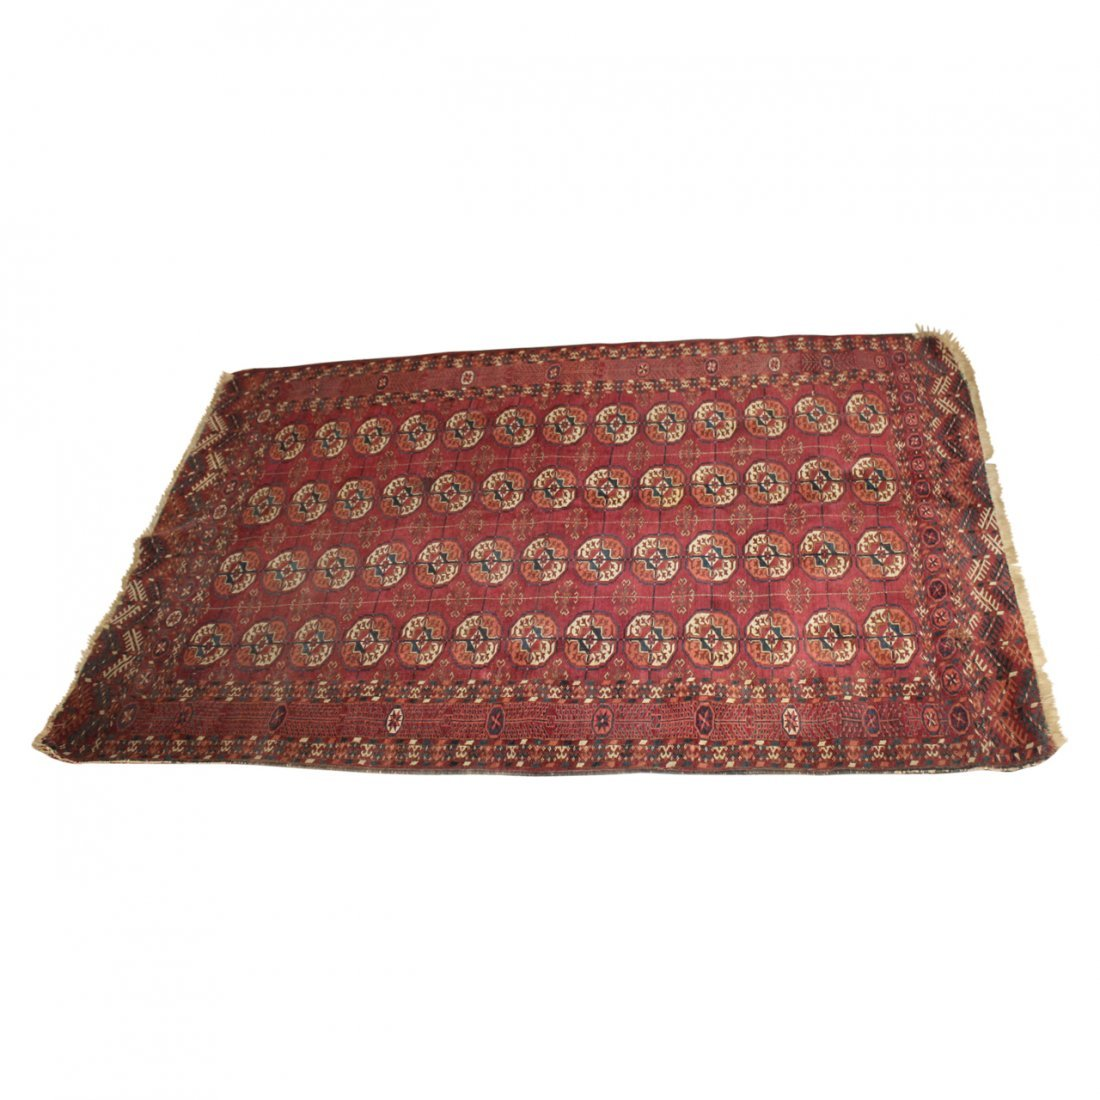 Fine Antique Tekke Turkoman Carpet